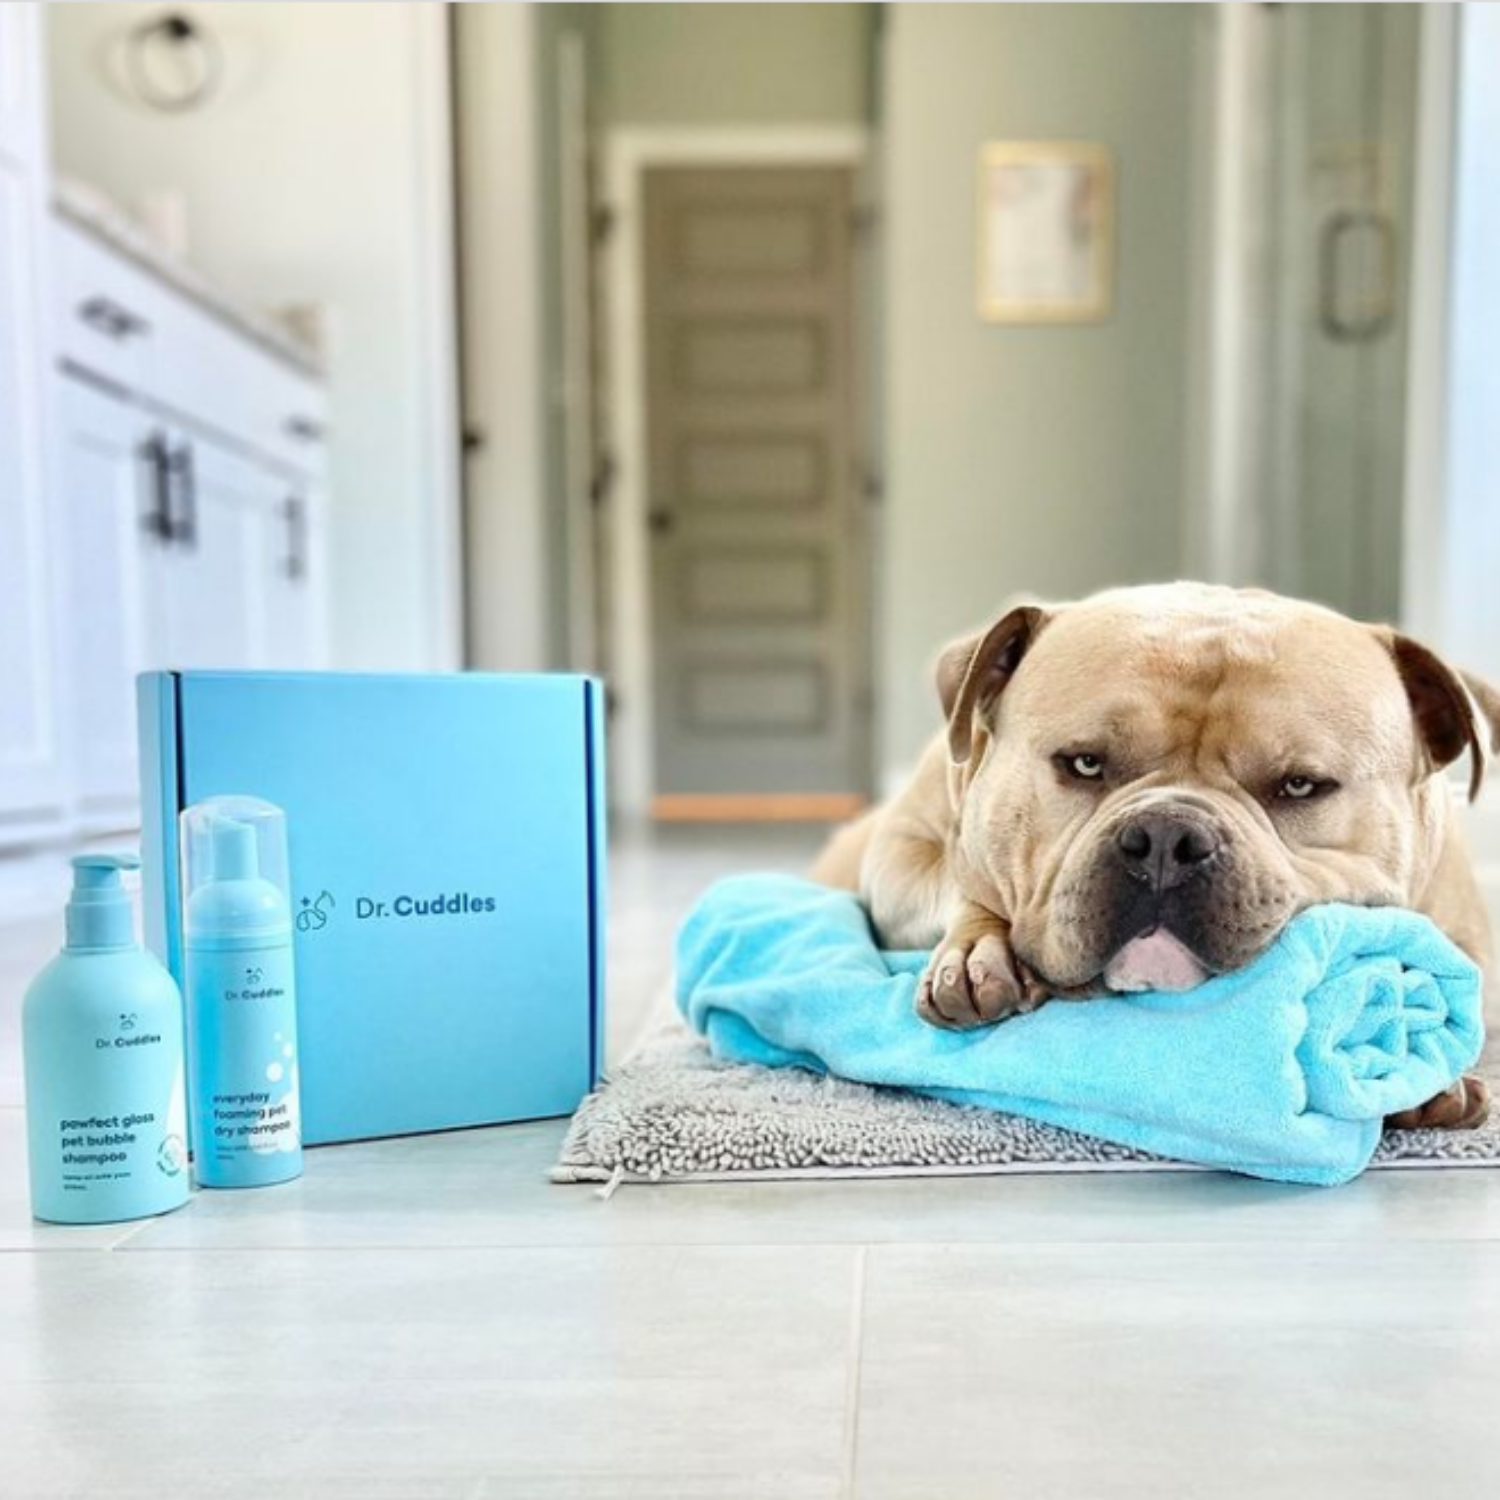 a bulldog lays next to the dr cuddles grooming duo